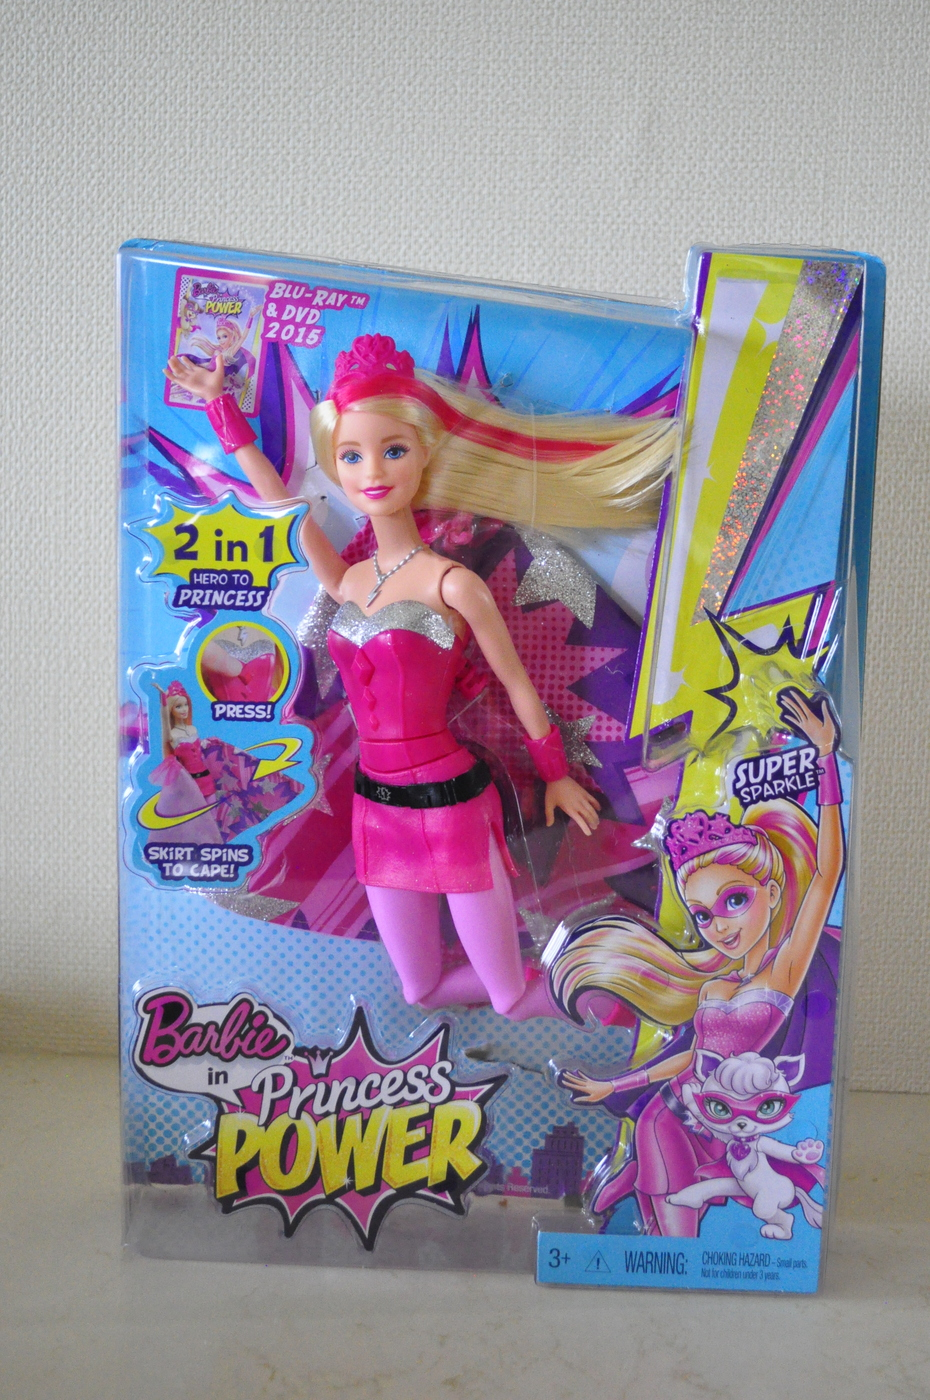 Super Sparkle Barbie - Barbie in Princess Power Doll